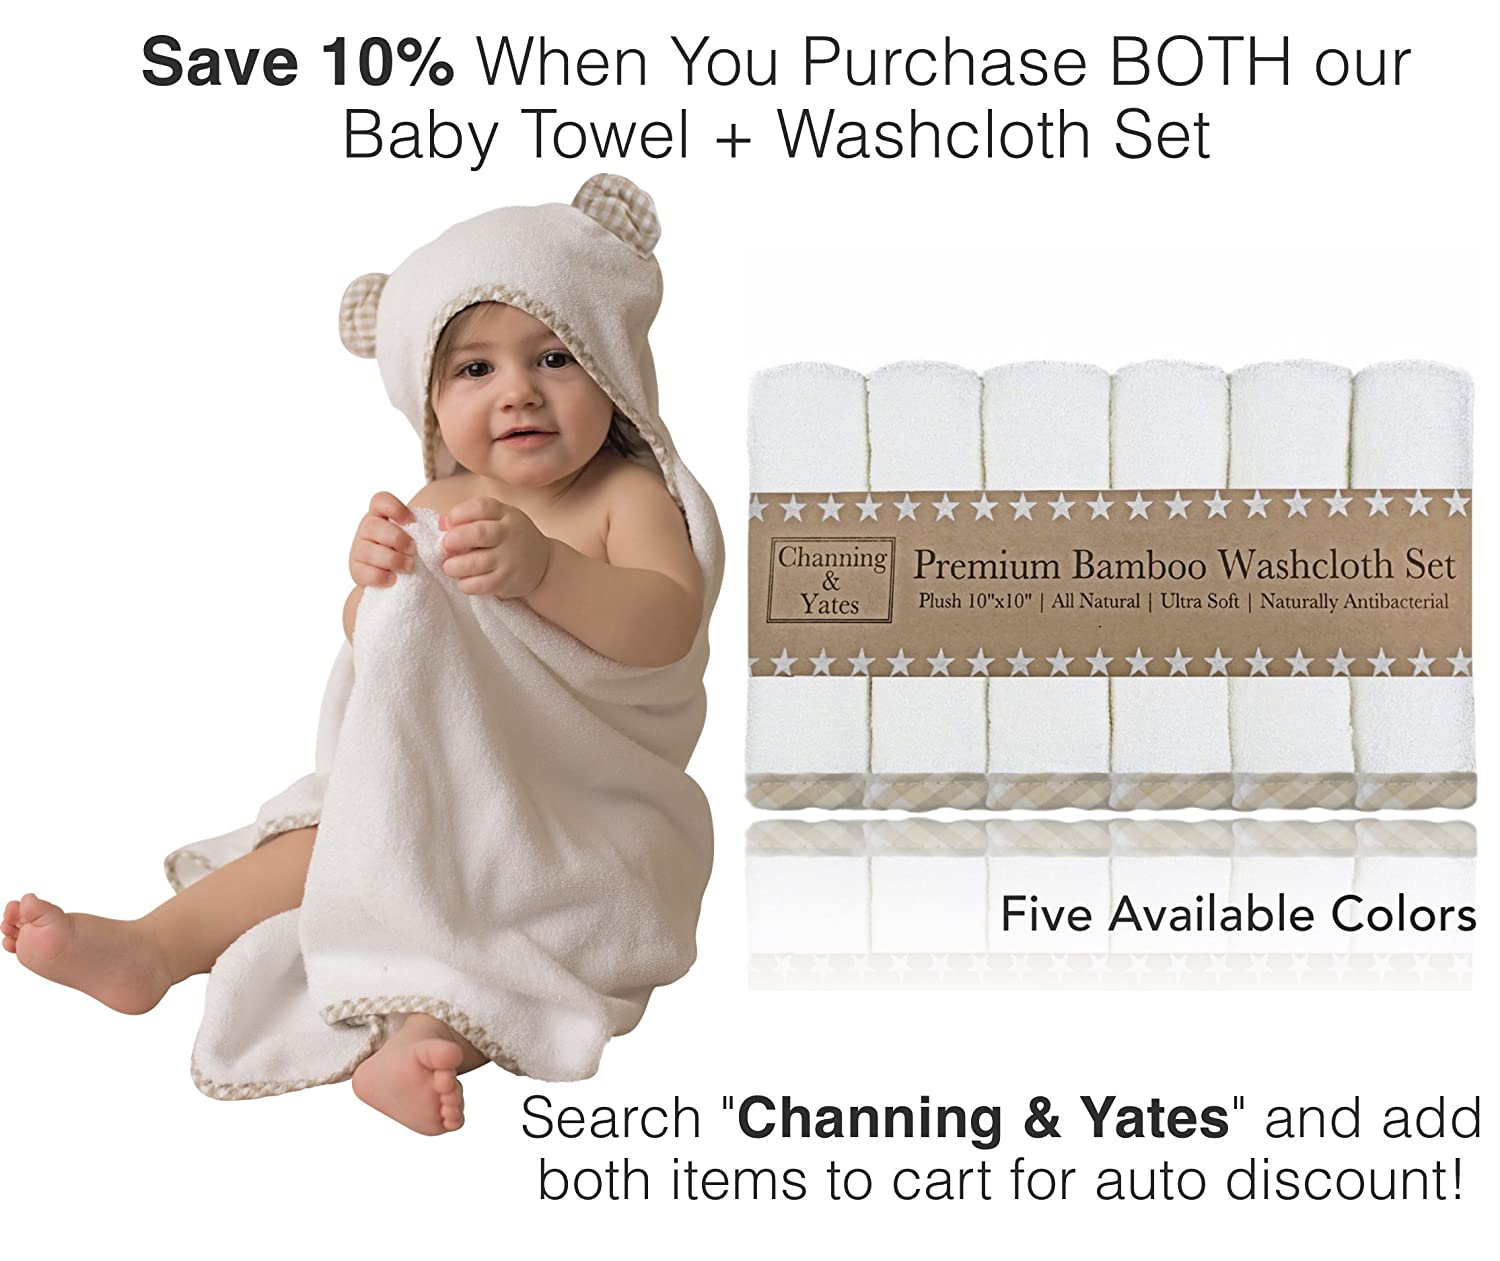 Premium Baby Towel with Hood and Washcloth Gift Set - Organic Baby Towels and Washcloths - Bamboo Hooded Towels for Baby - Hypoallergenic Large Toddler Towels for Boys or Girls (Beige/White)